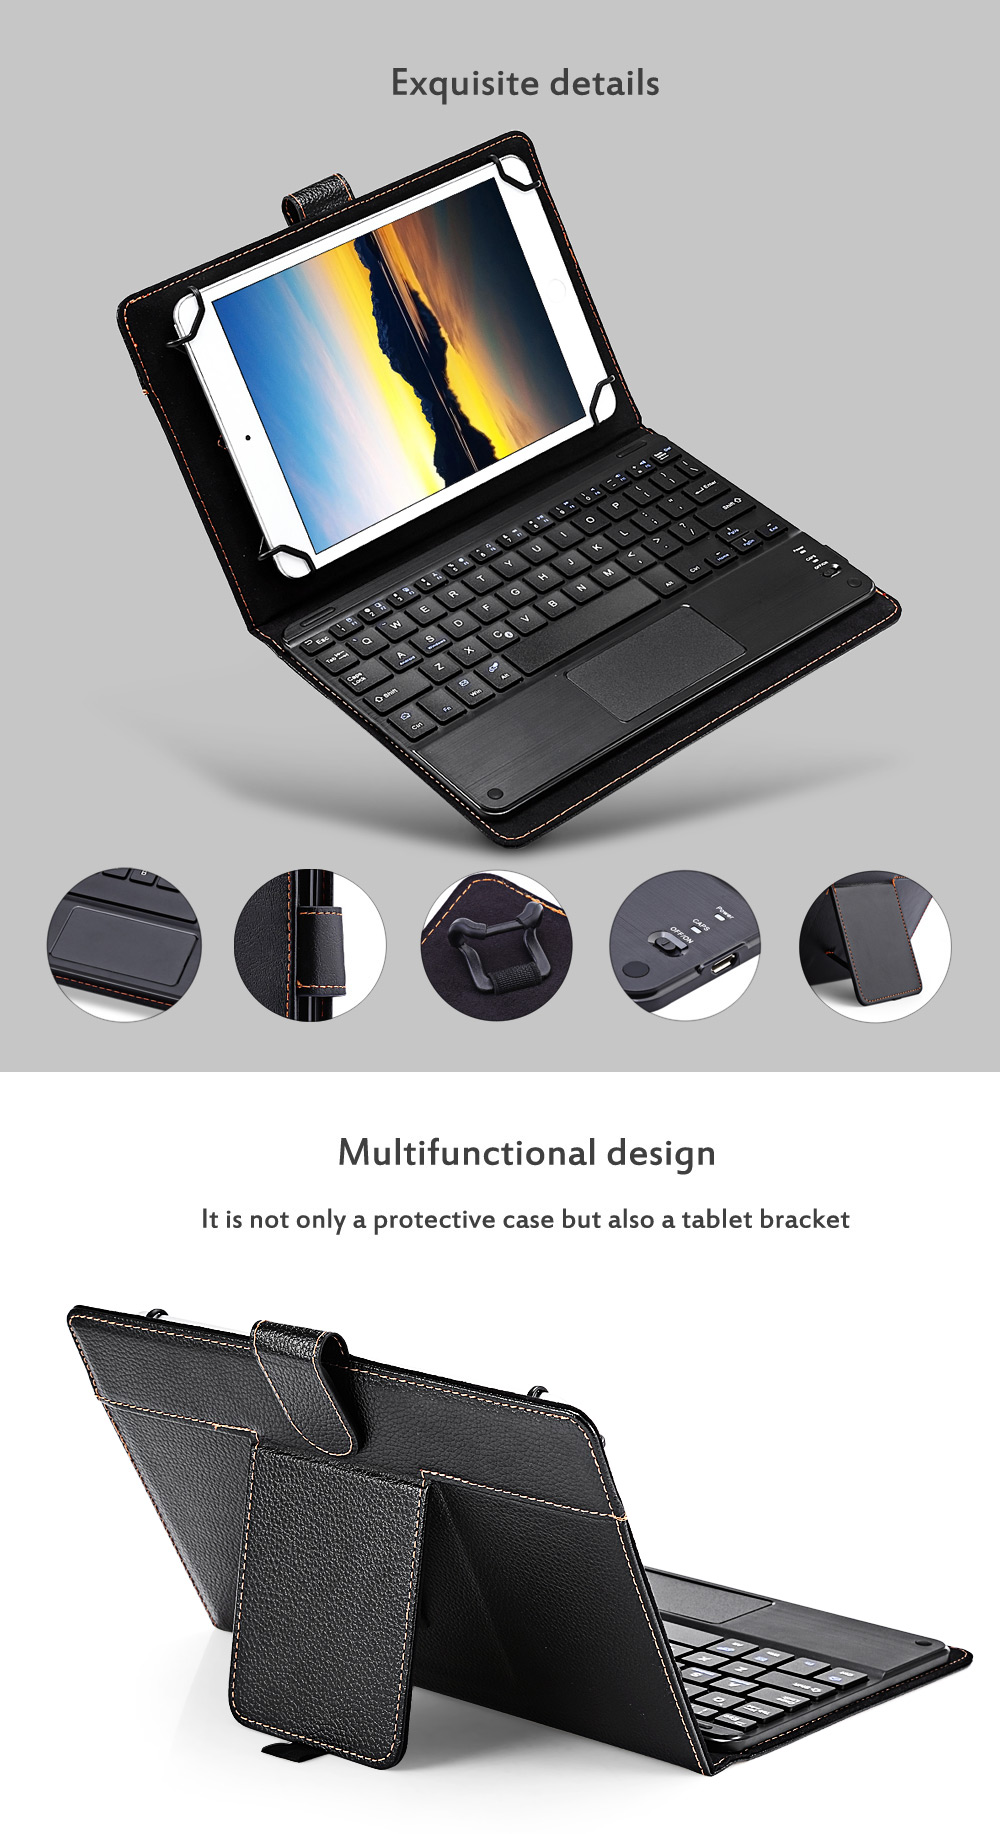 3 in 1 Universal Bluetooth Keyboard Touch Control Tablet Case with Kickstand for iOS / Android / Windows 8 - 8.9 inch